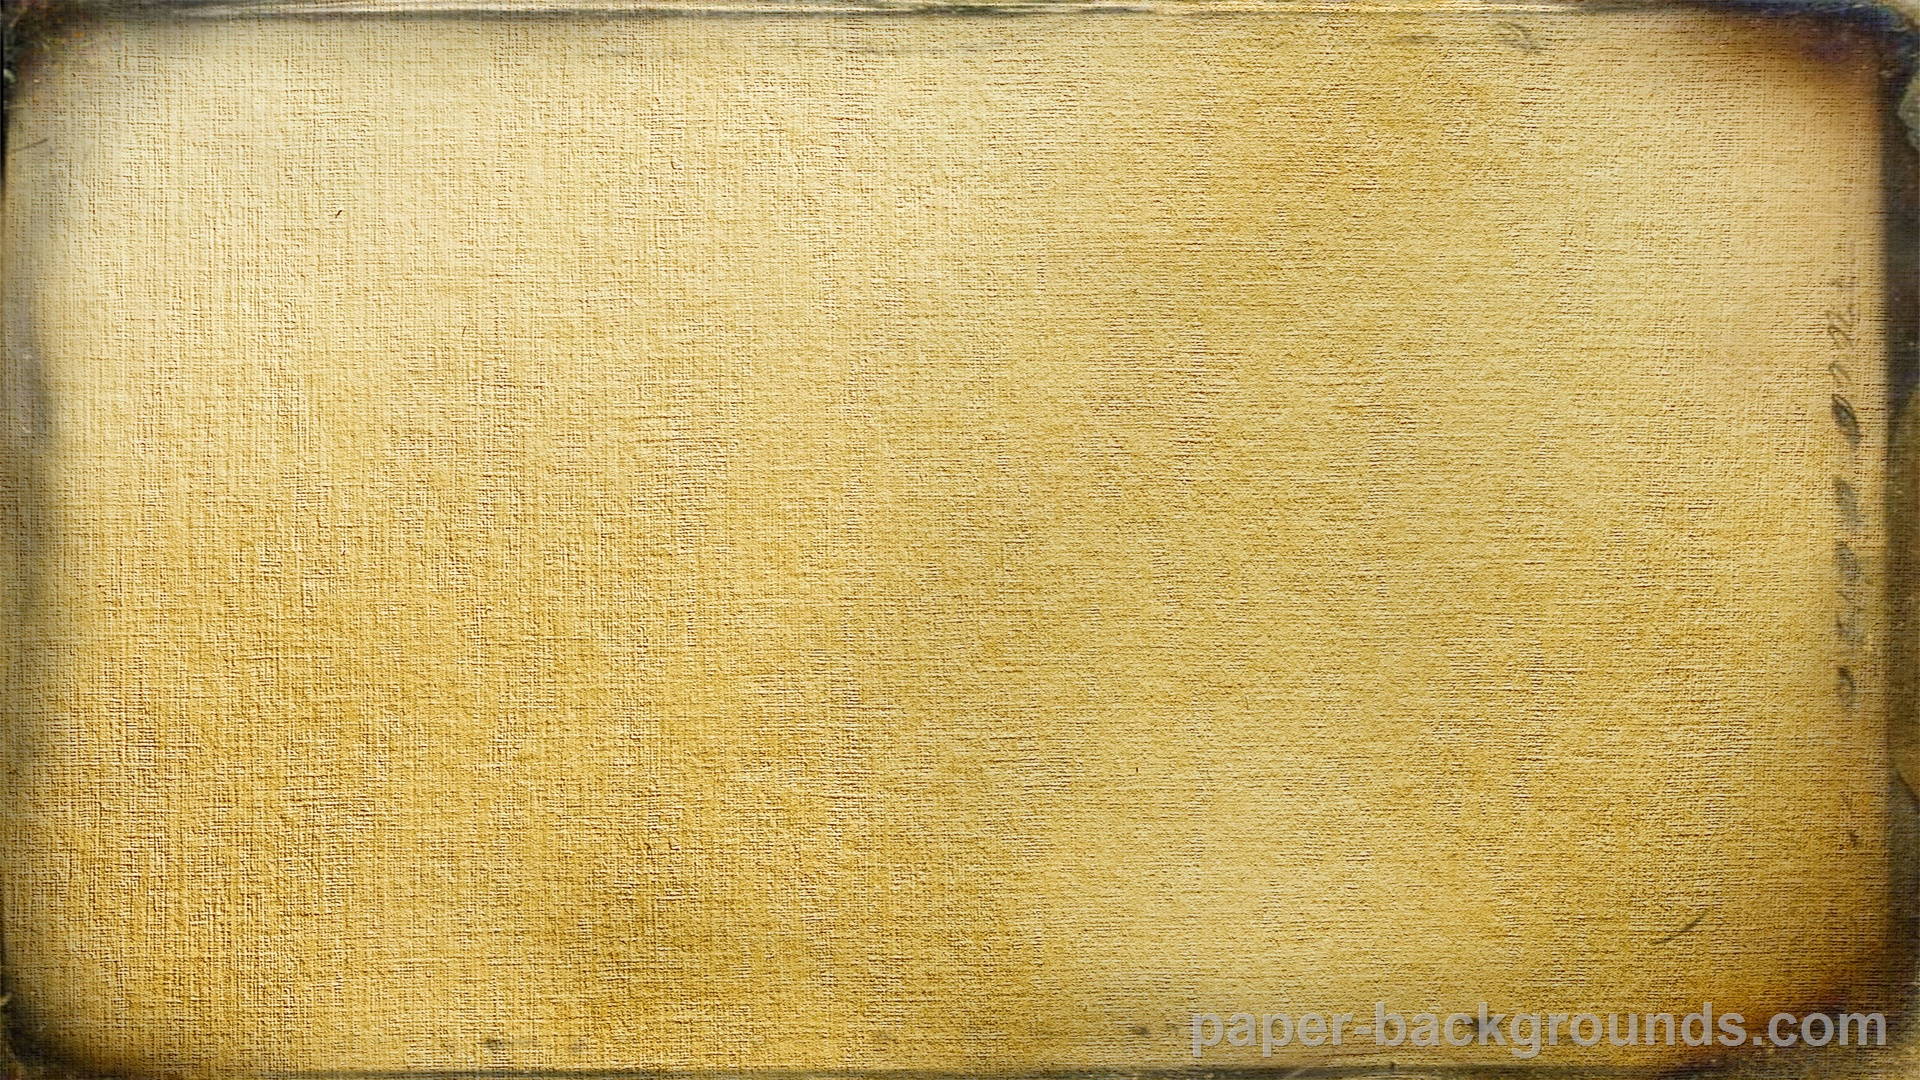 Burned Old Paper Background Texture Grunge HD